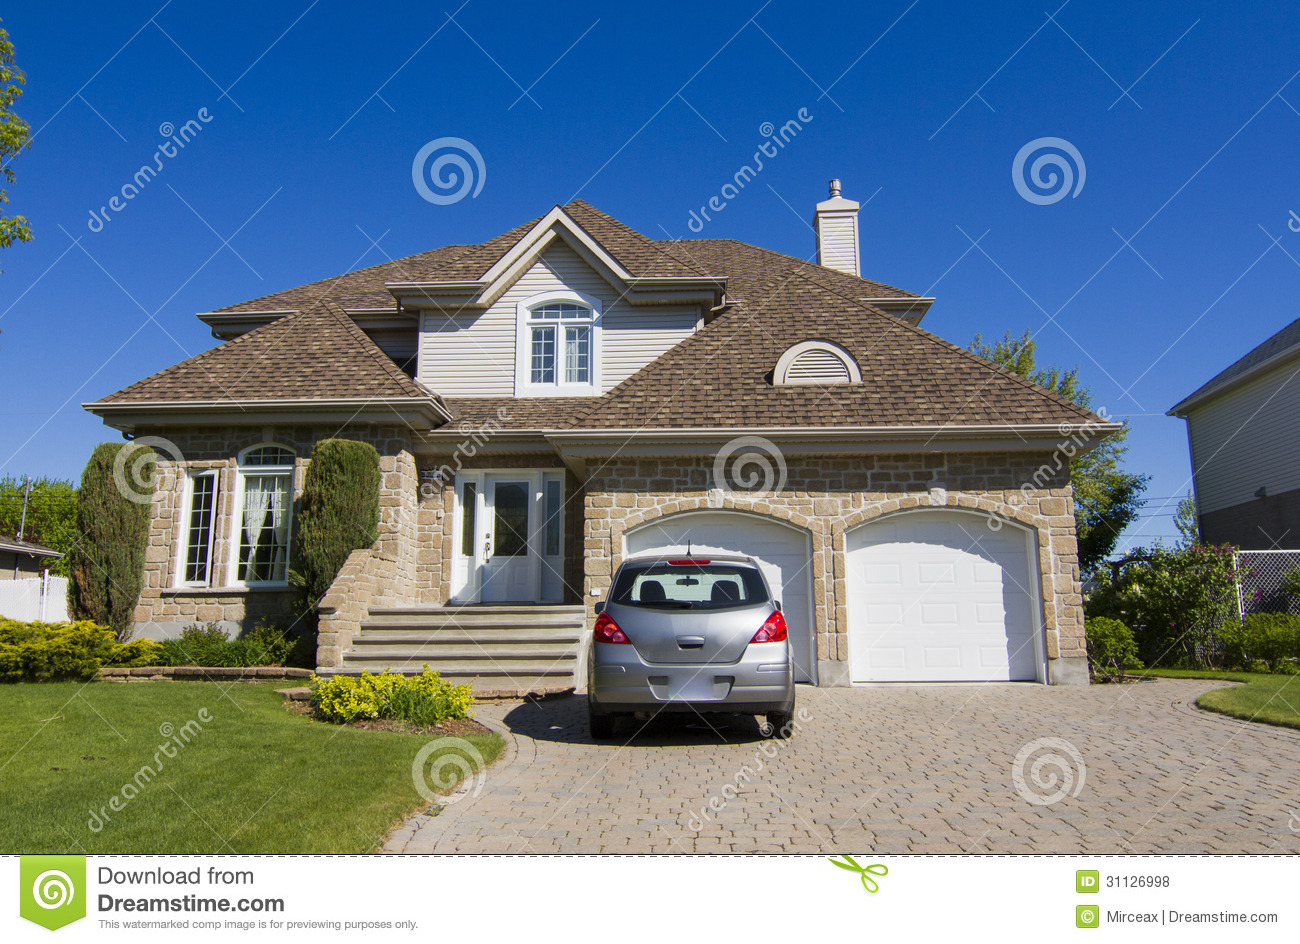 Luxury house royalty free stock photos image 31126998 for Free luxury home images